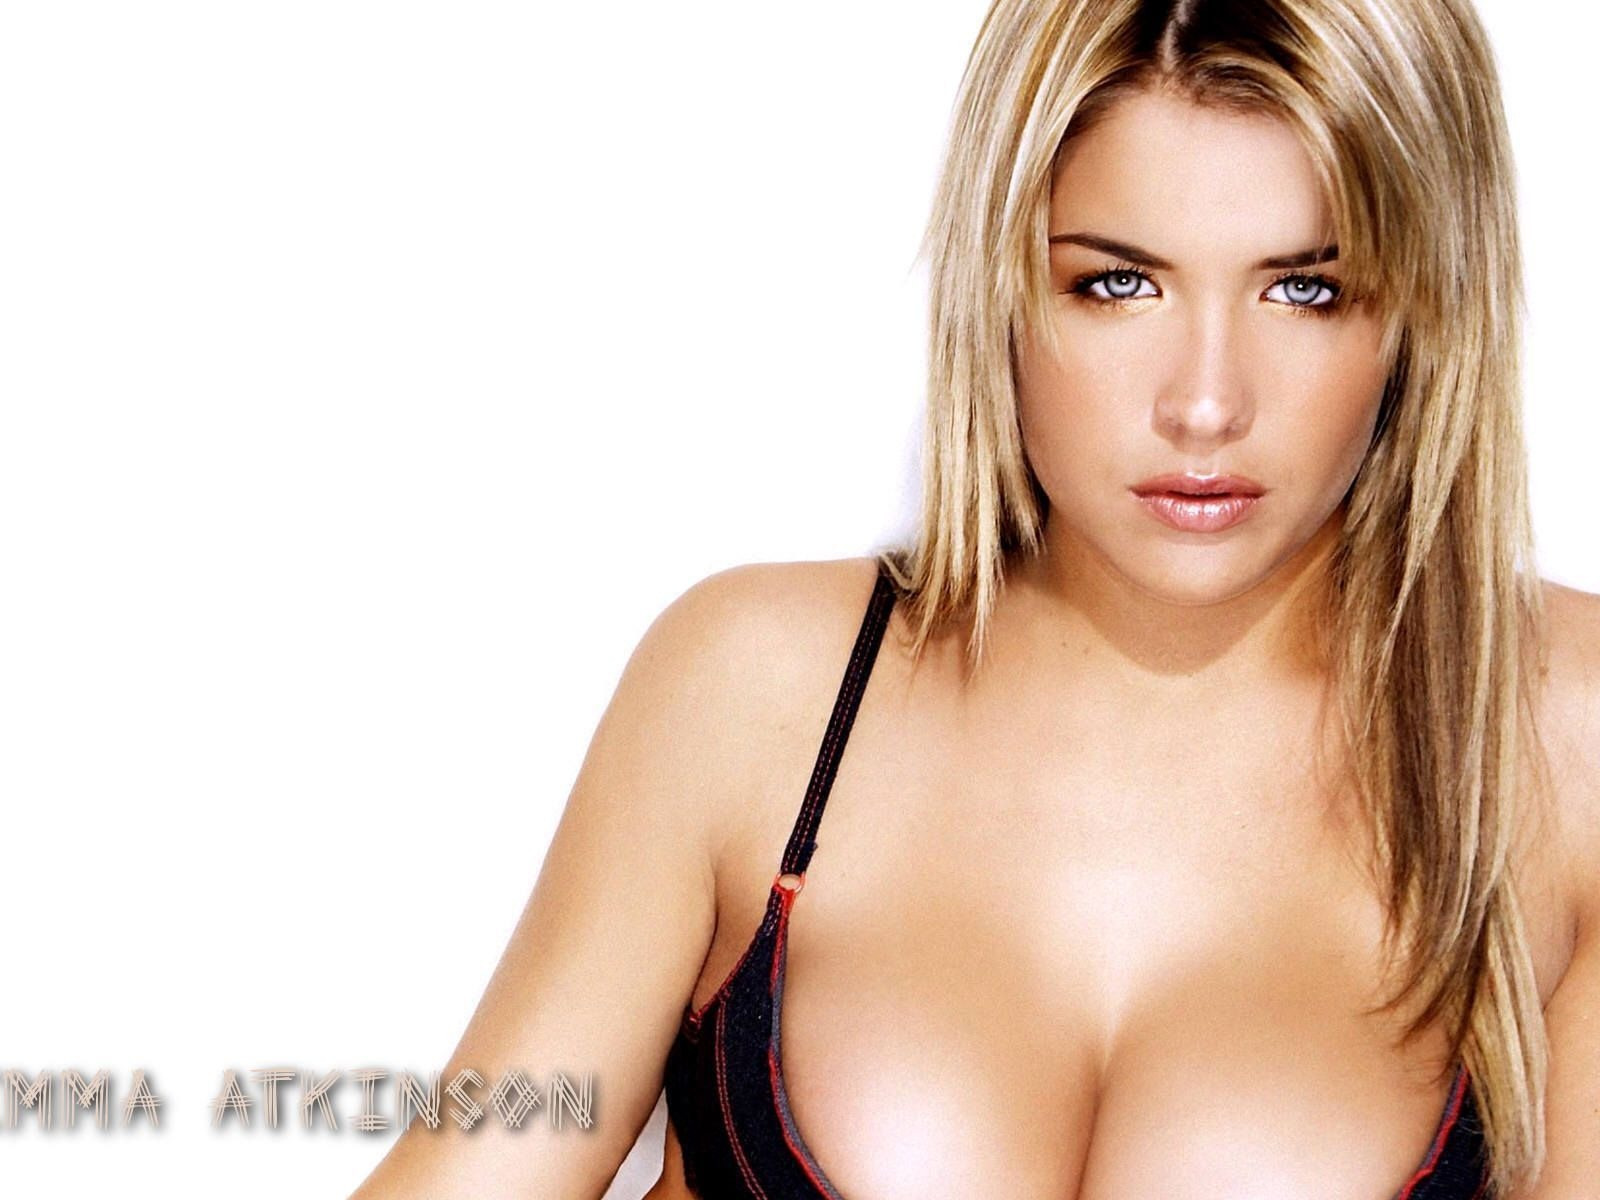 Gemma Atkinson #024 - 1600x1200 Wallpapers Pictures Photos Images